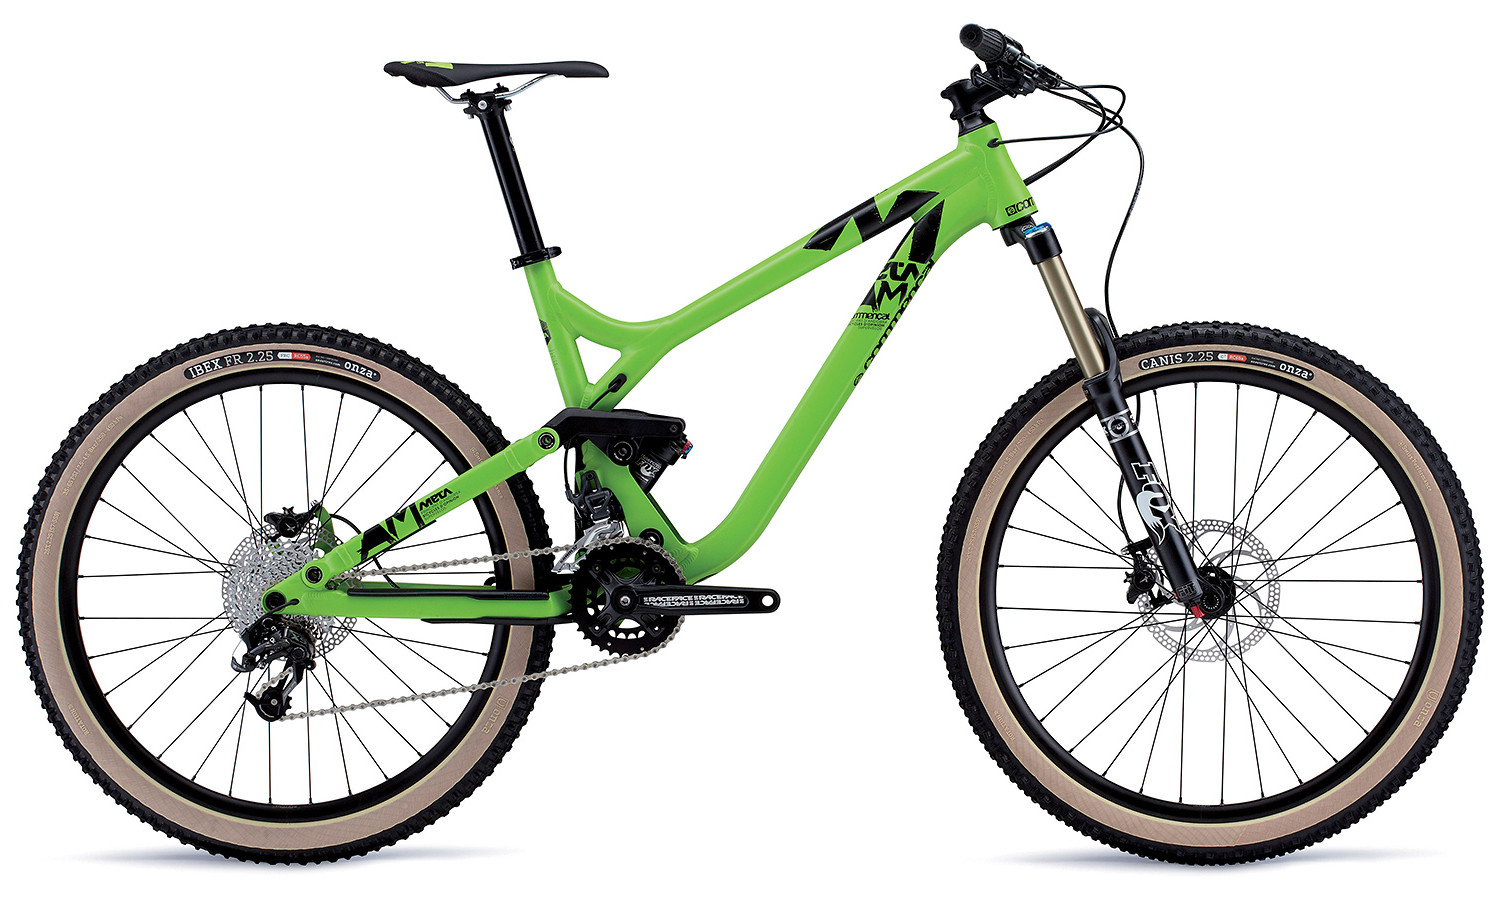 2013 Commencal Meta AM2  META_AM2_013